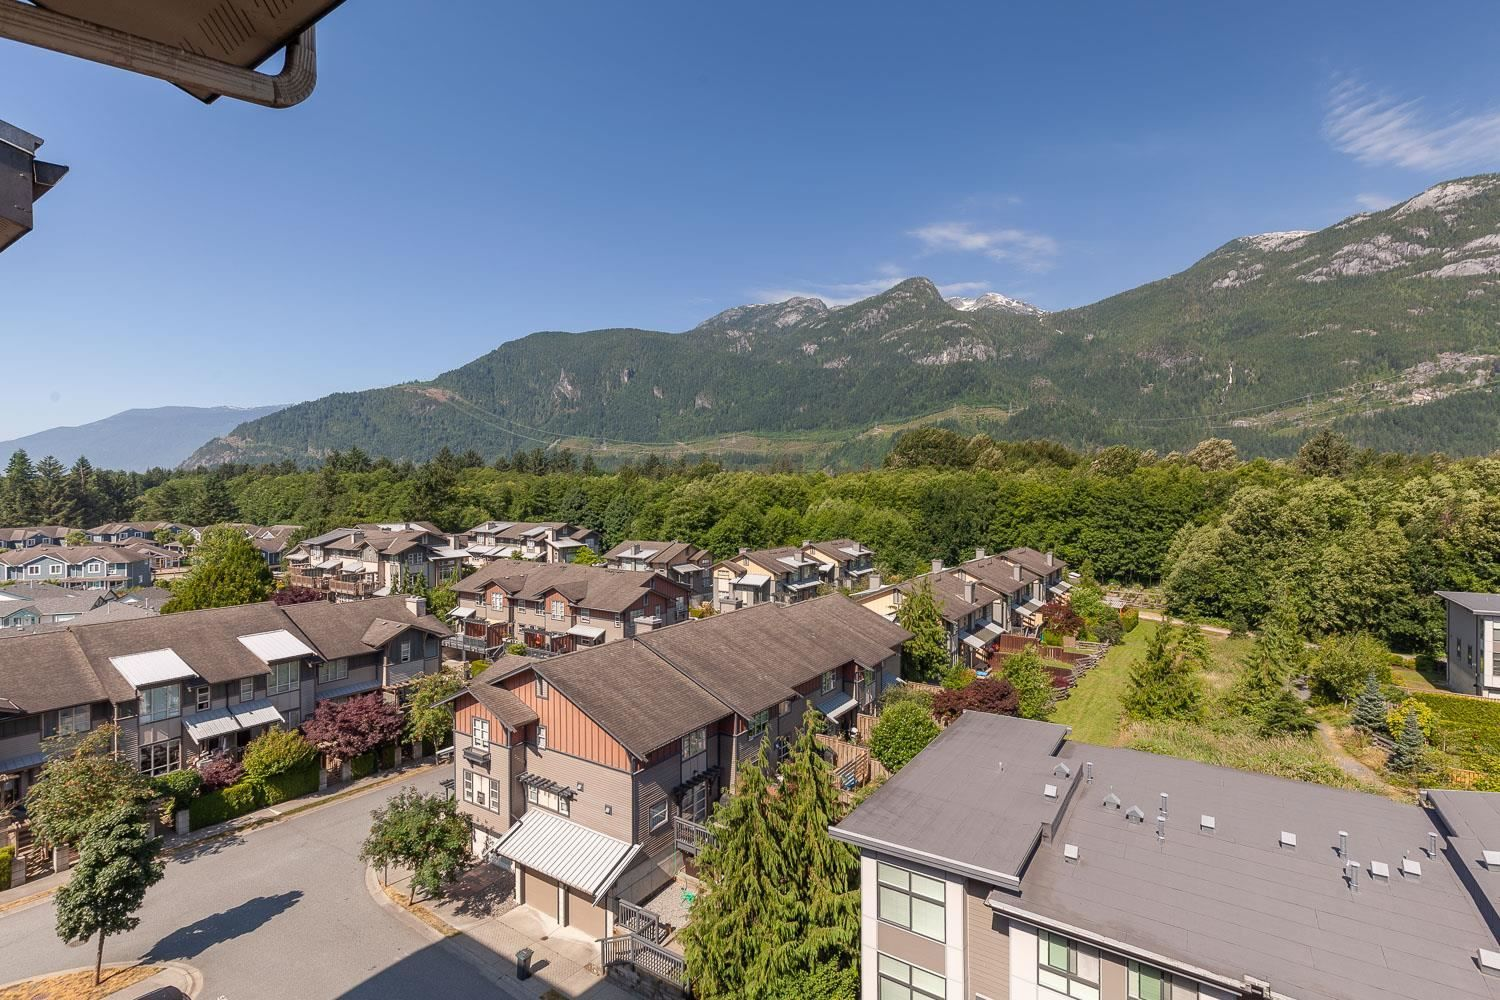 """Main Photo: 603 1211 VILLAGE GREEN Way in Squamish: Downtown SQ Condo for sale in """"ROCKCLIFF"""" : MLS®# R2573545"""